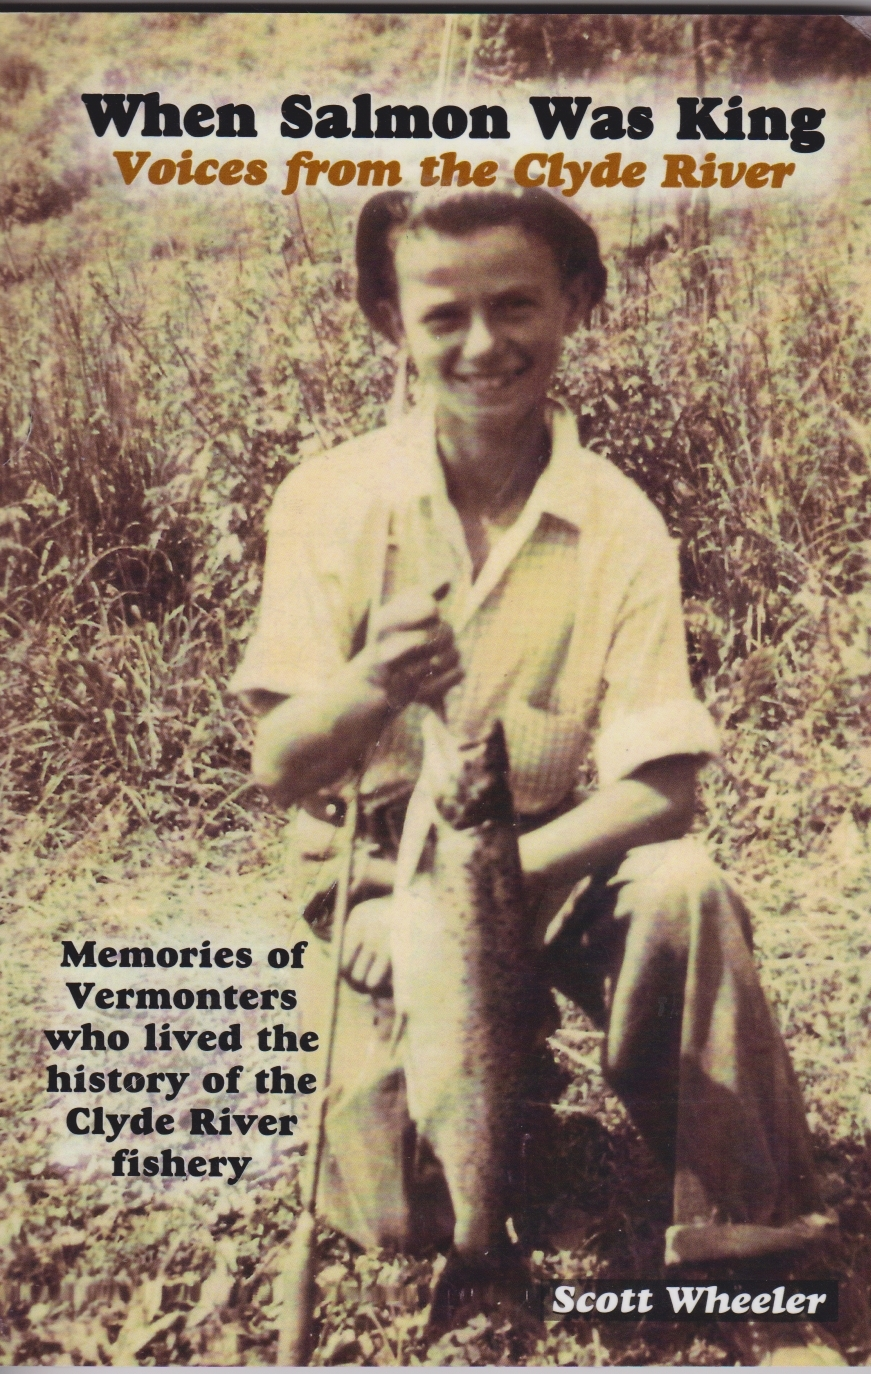 When Salmon Was King: Voices from the Clyde River 978-00615-17498-3